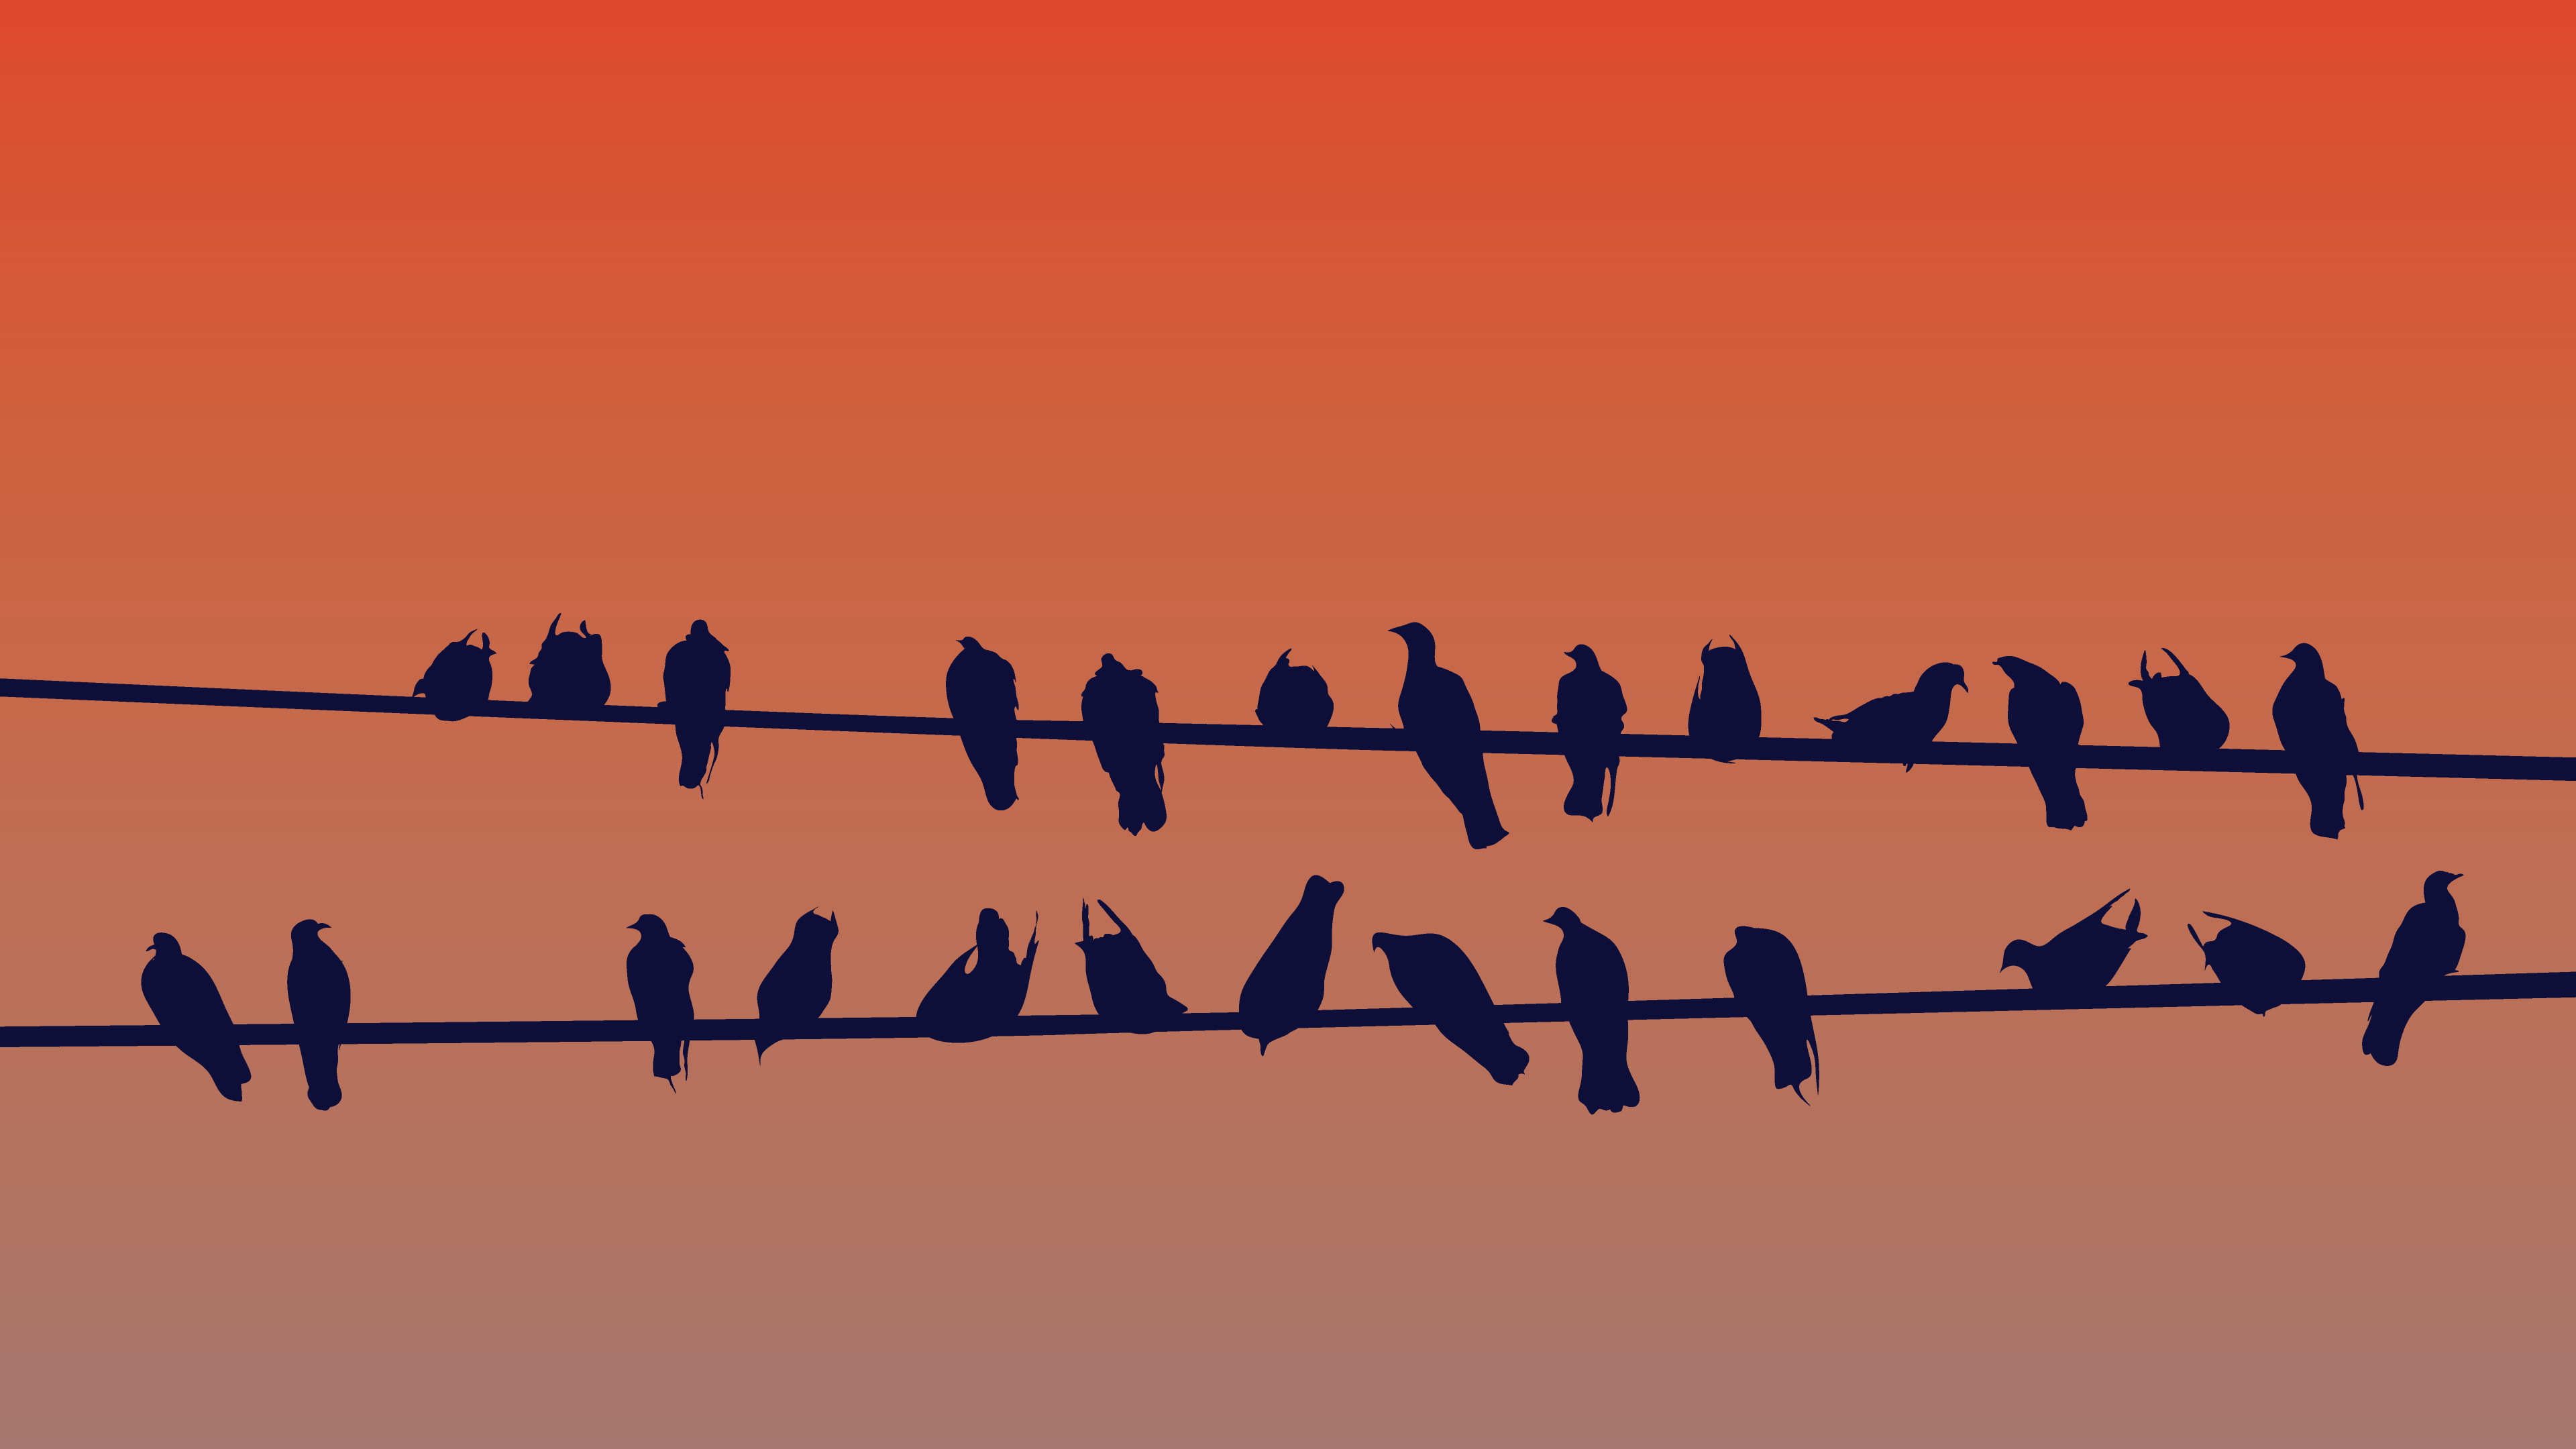 Must see Wallpaper Bird Minimalist - birds-of-a-feather  Picture_712822.jpg